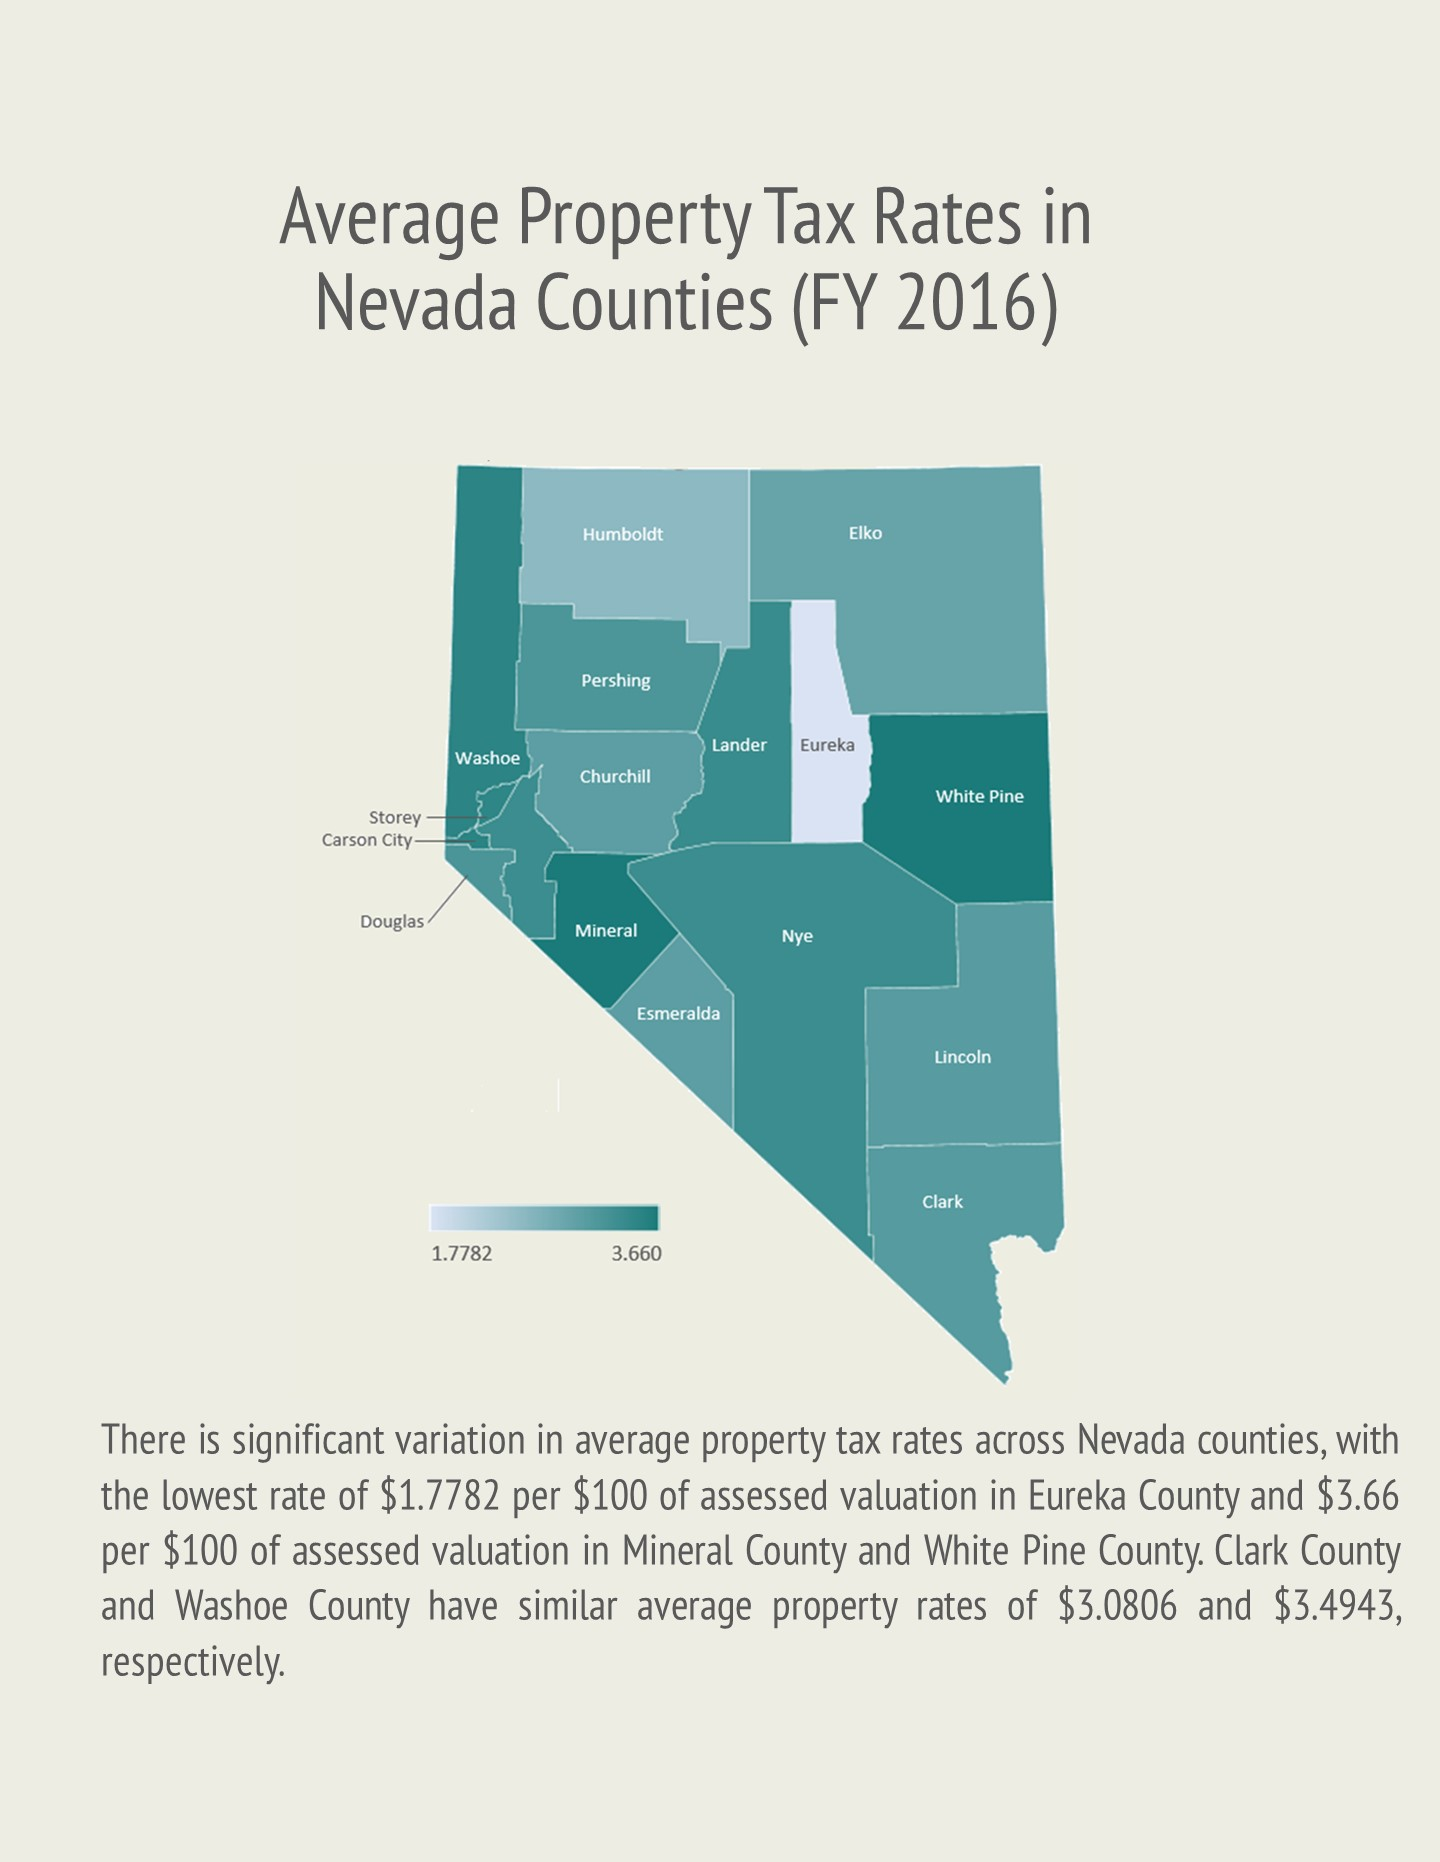 Clark County Property Tax Rate